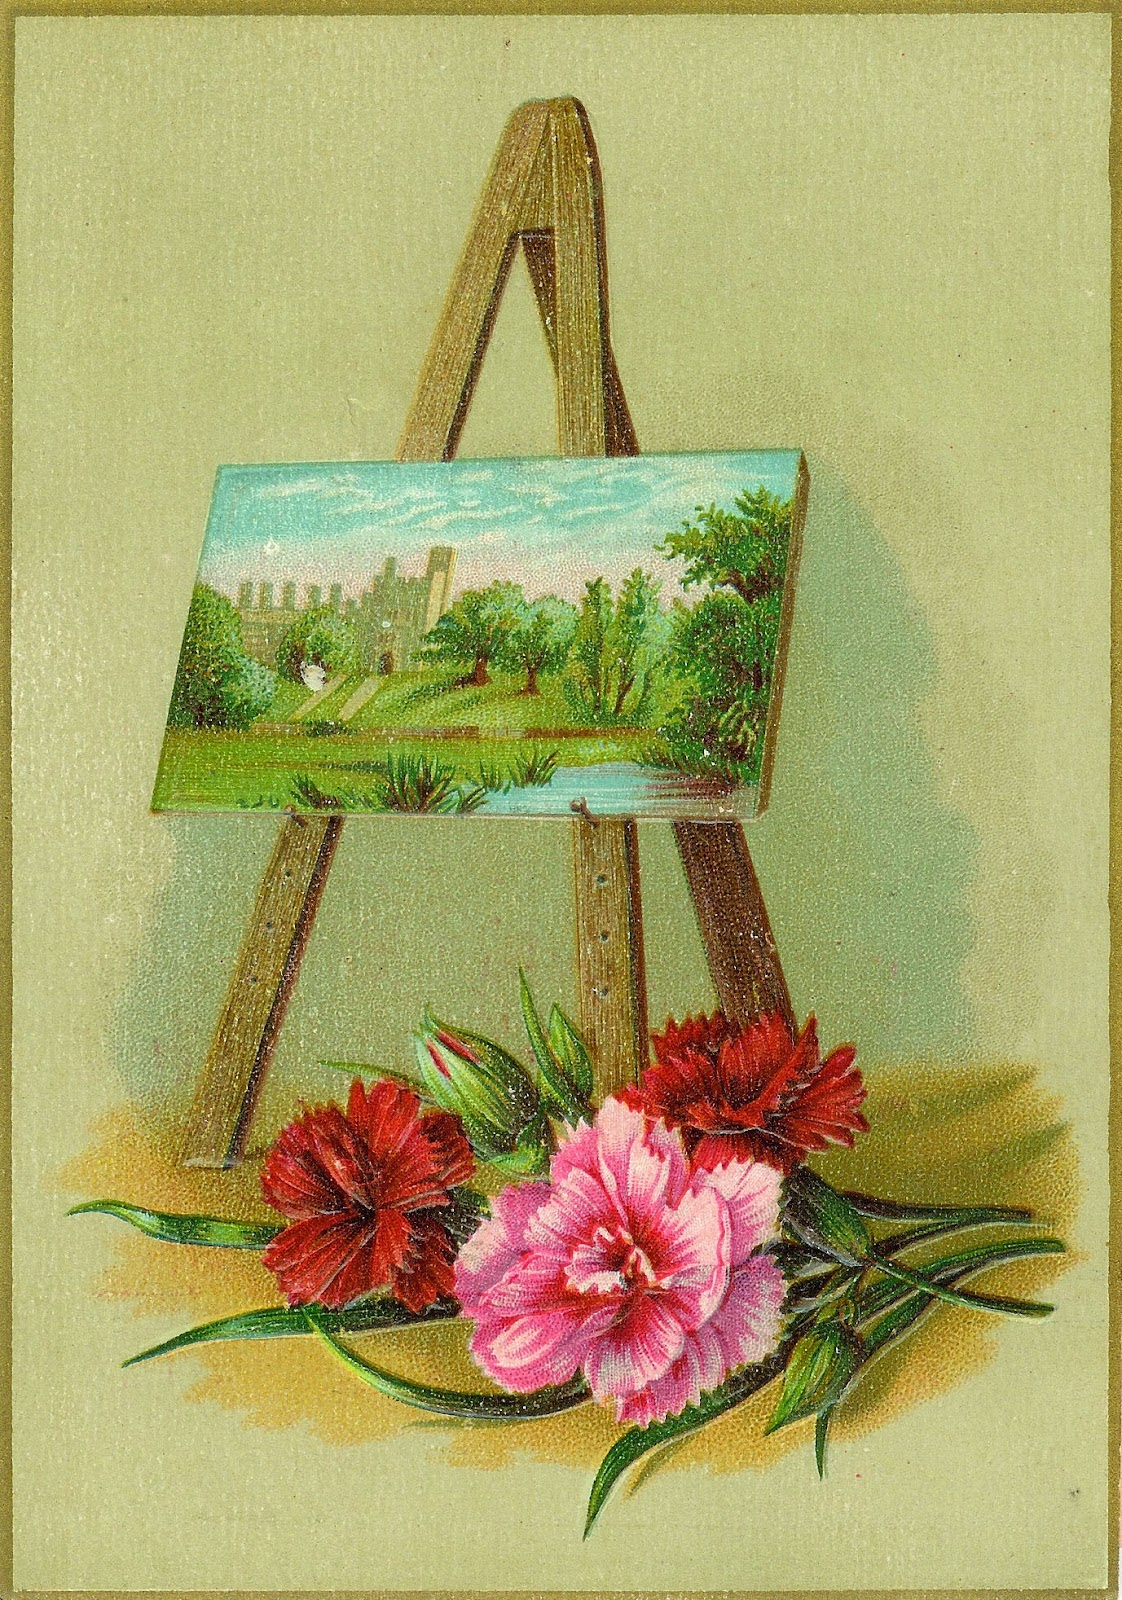 Painting on an easel and pink and red carnations.